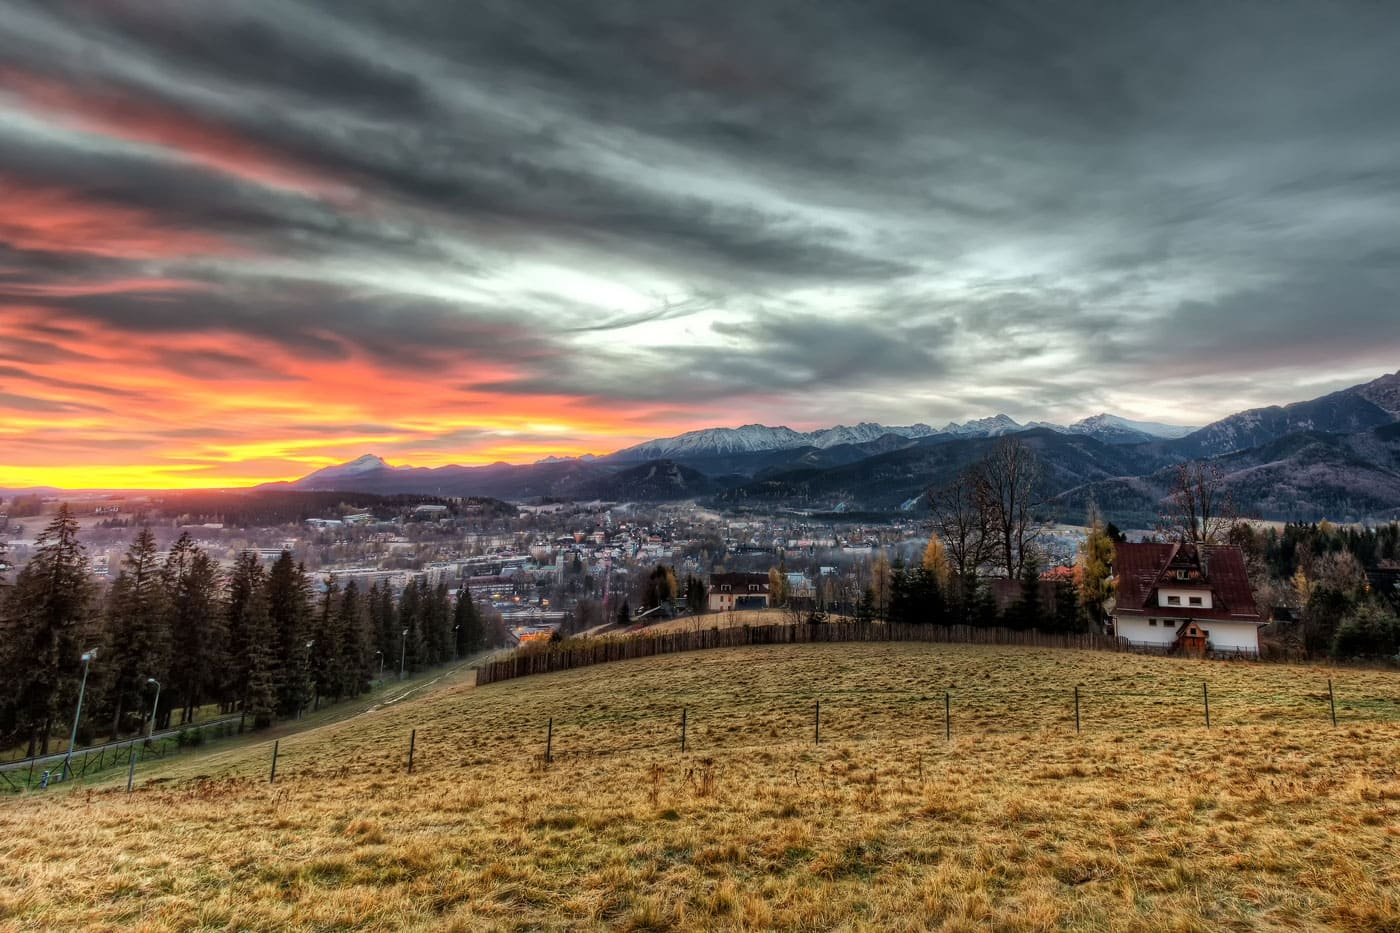 Sunrise at Tatra Mountains | Zakopane, Poland